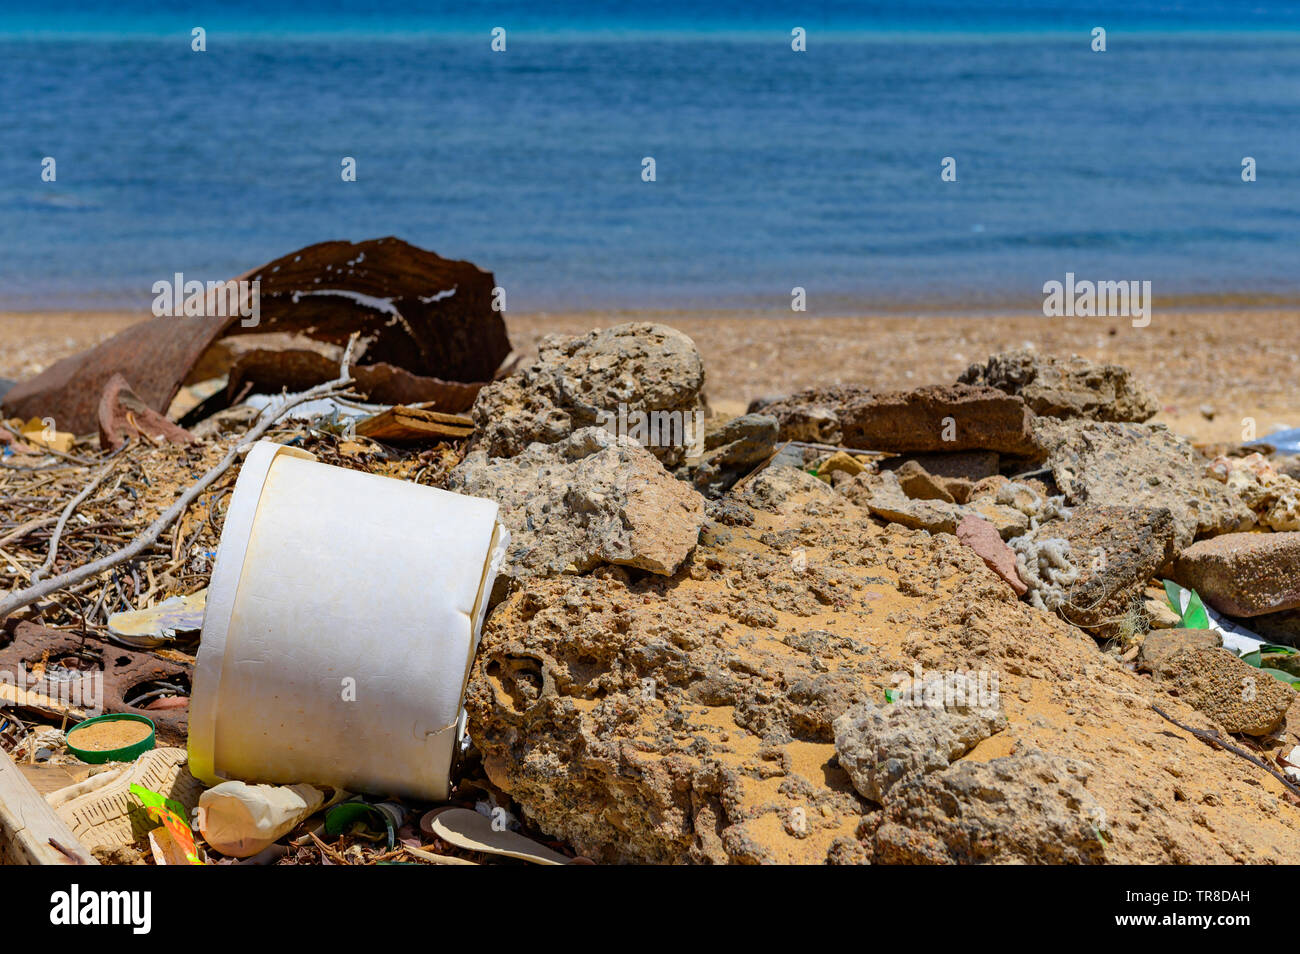 Spilled garbage on the beach of the big city. Empty used dirty plastic bottles. Dirty sea sandy shore the sea. environmental pollution. ecological pro - Stock Image